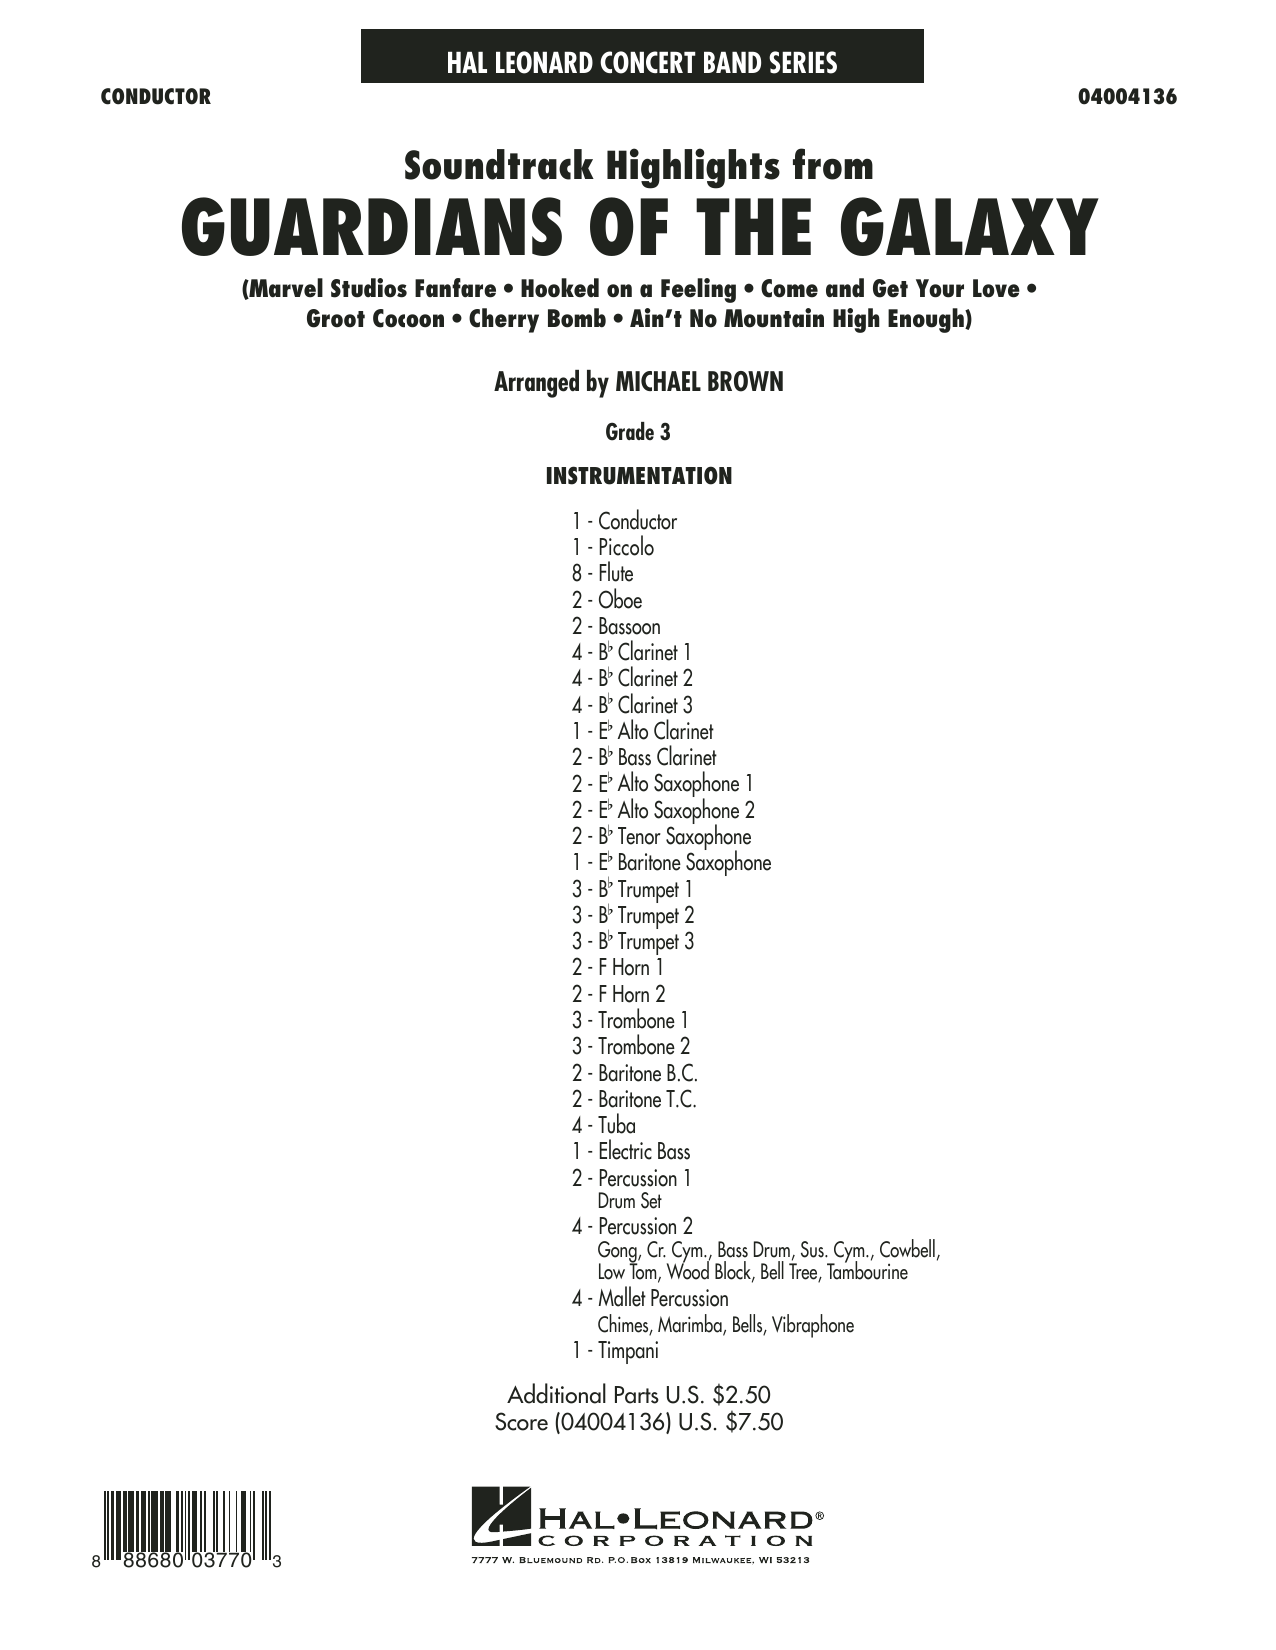 Michael Brown Soundtrack Highlights from Guardians of the Galaxy - Conductor Score (Full Score) sheet music preview music notes and score for Concert Band including 30 page(s)